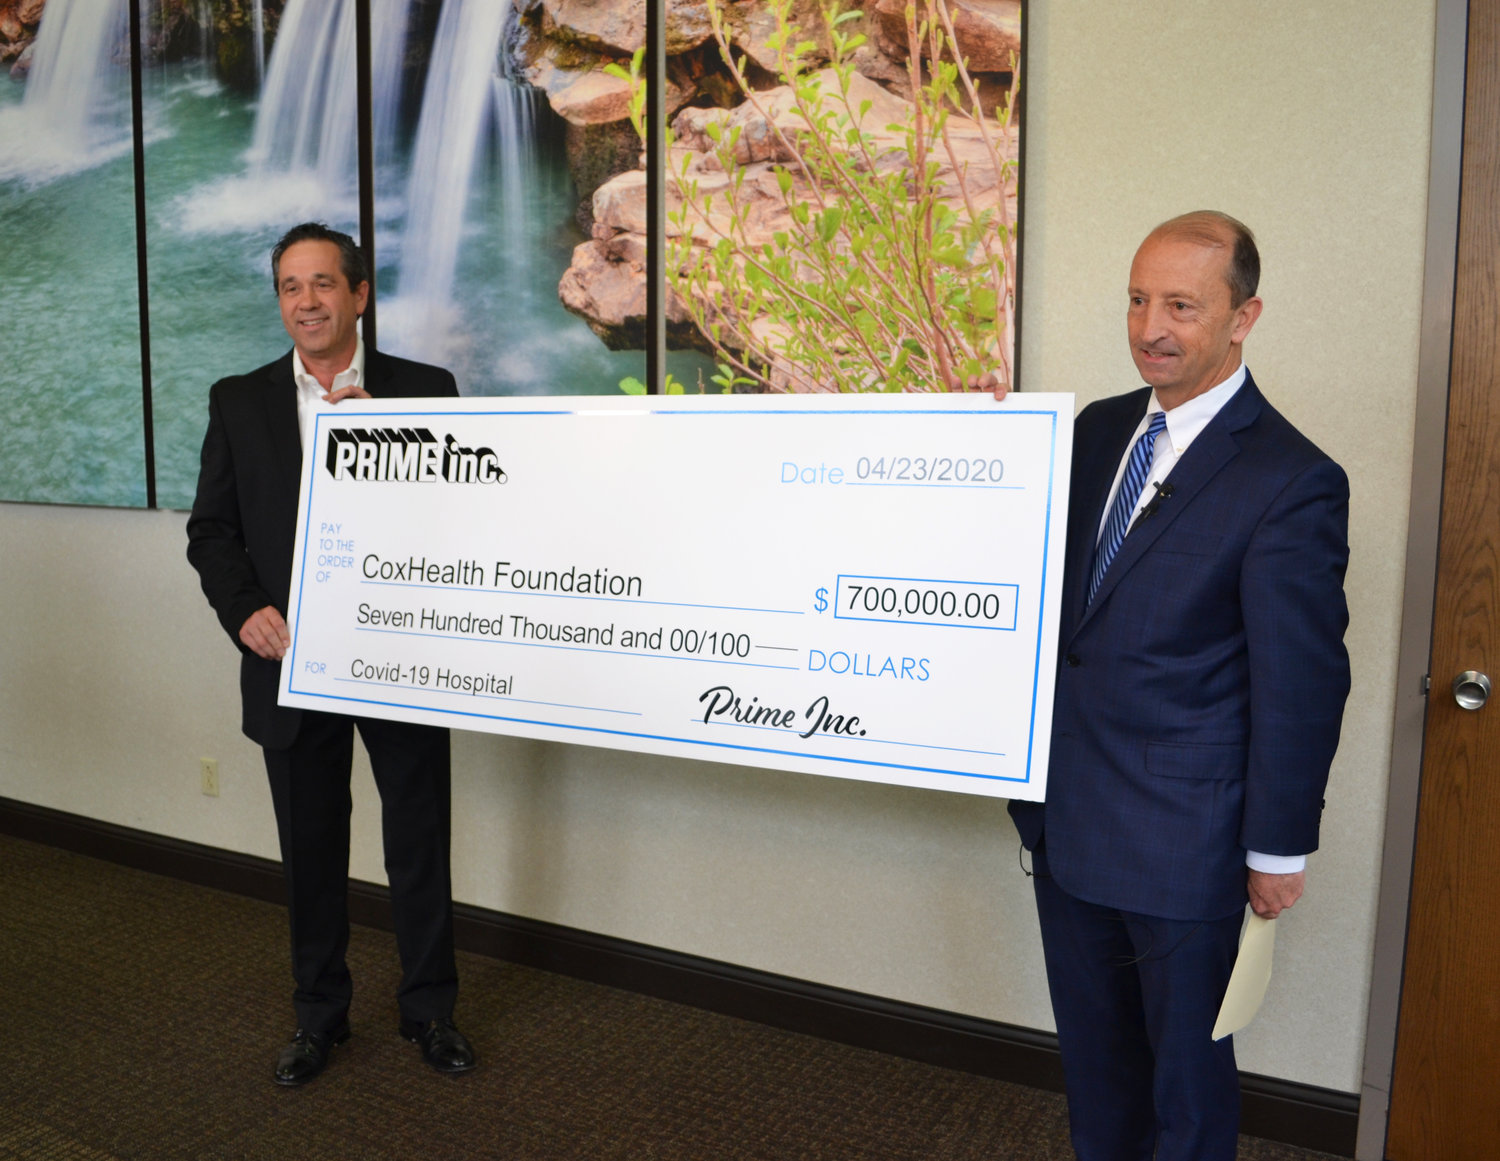 Darrel Hopkins, director of leasing and controller at Prime, left, presents a check to CoxHealth President and CEO Steve Edwards.